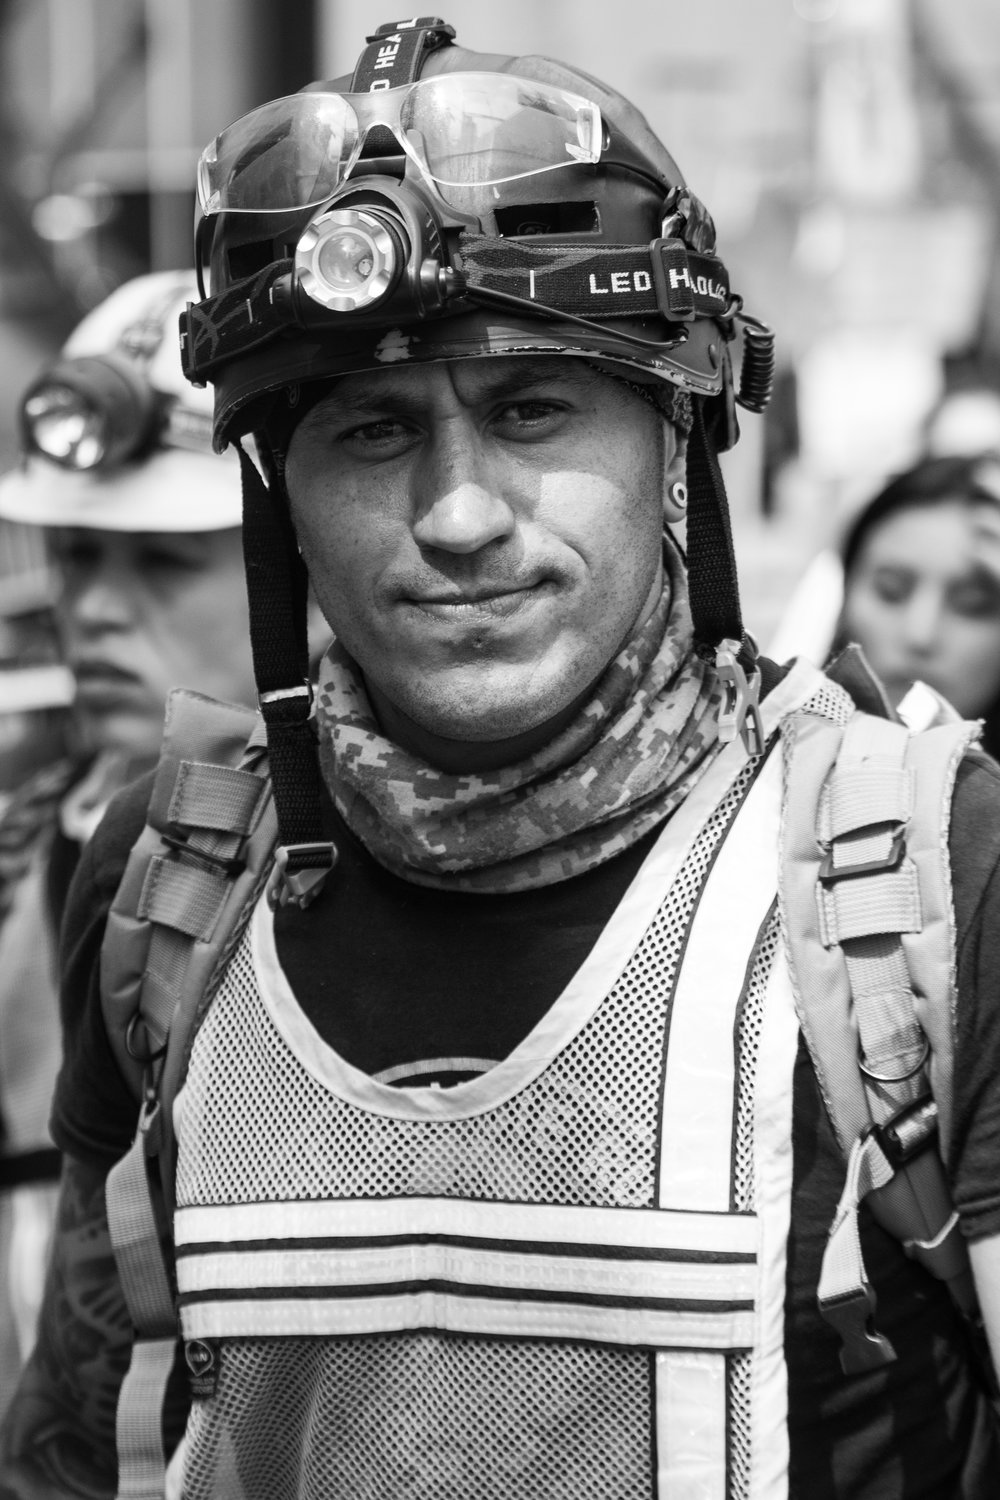 Cory Zimmerman  - Rescue Team, CDMX